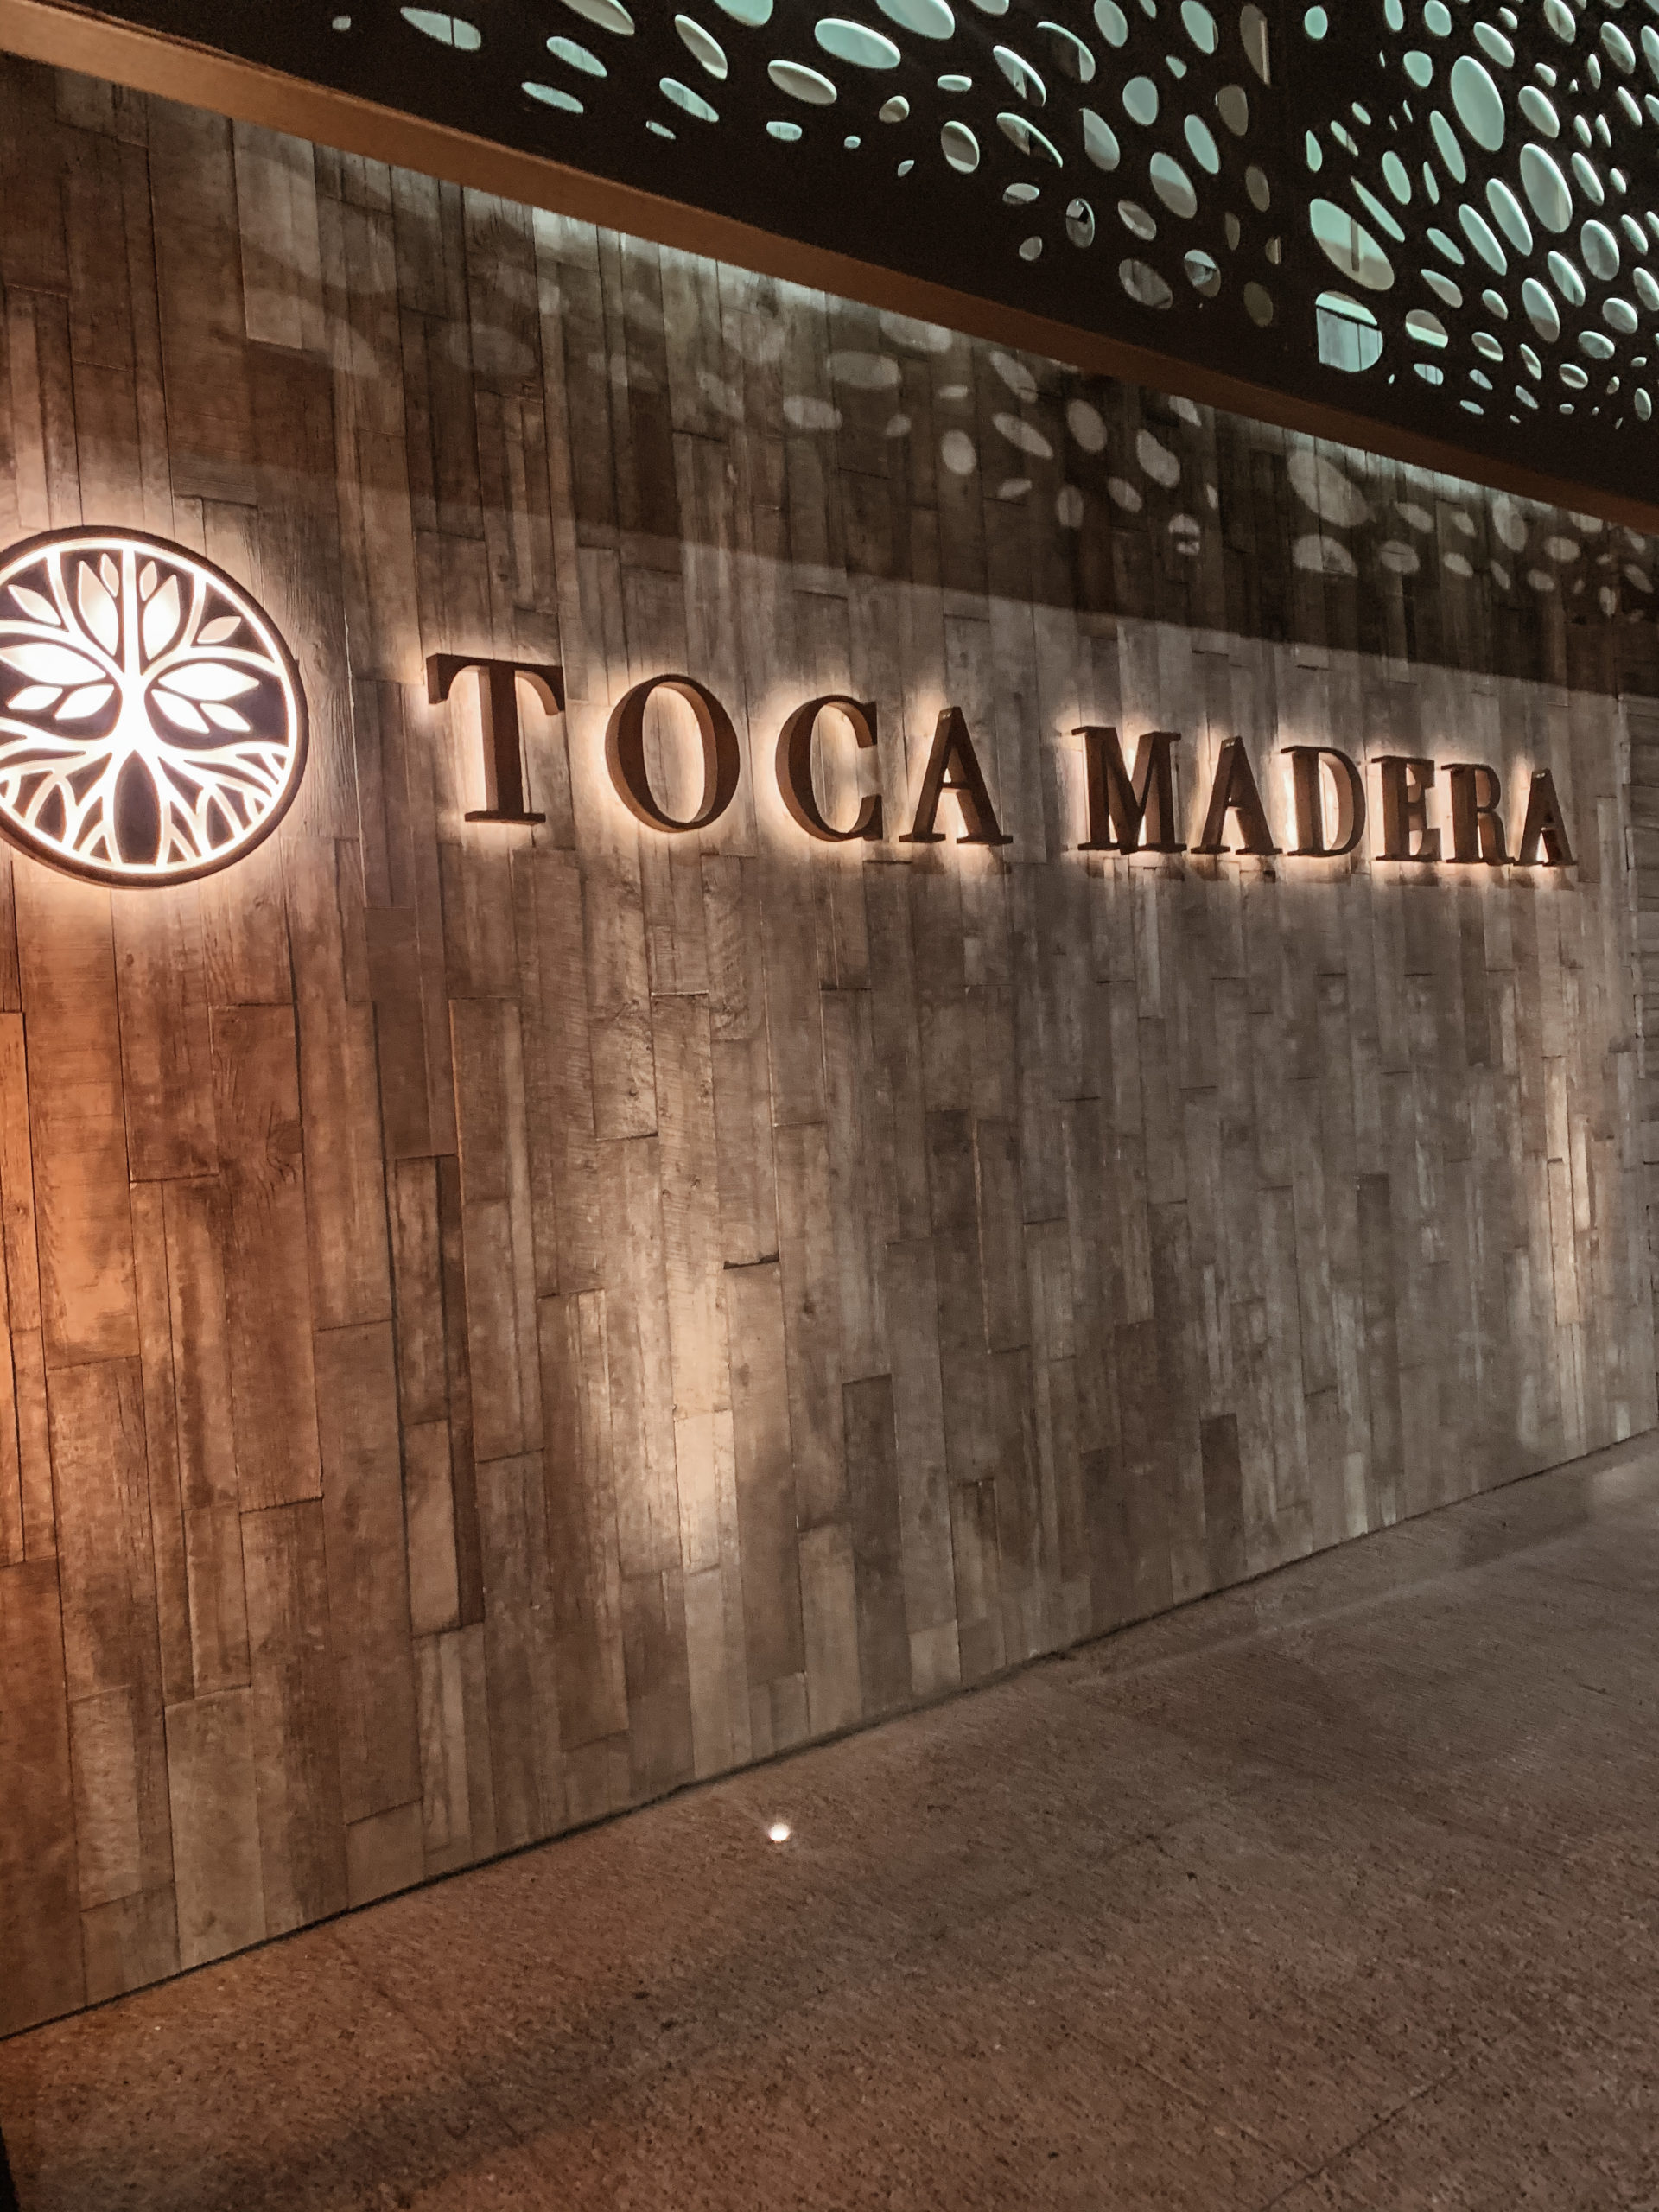 Toca Madera in Scottsdale - Entrance